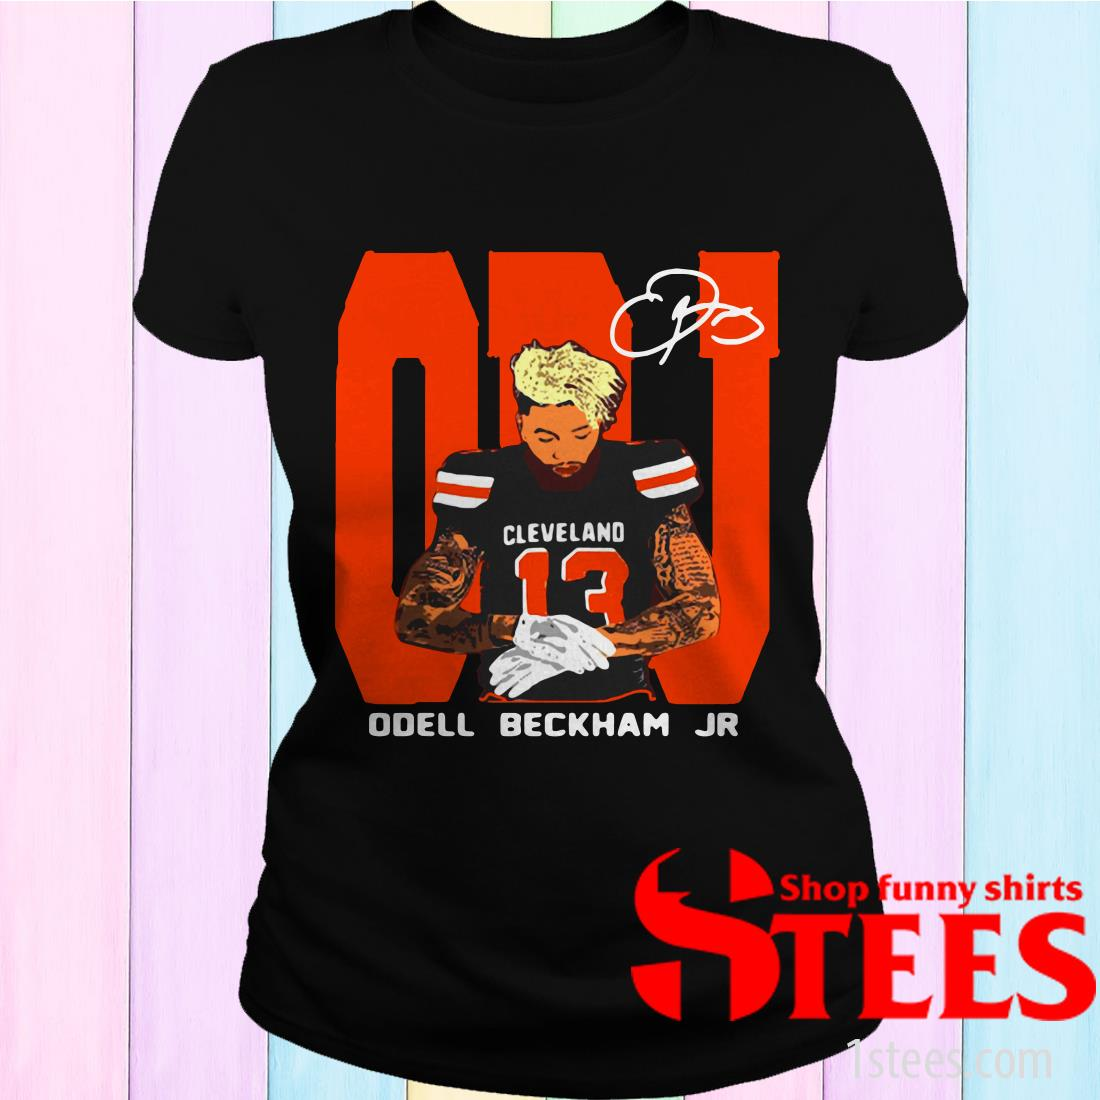 Odell Beckham Jr. Cleveland Browns Signature shirt